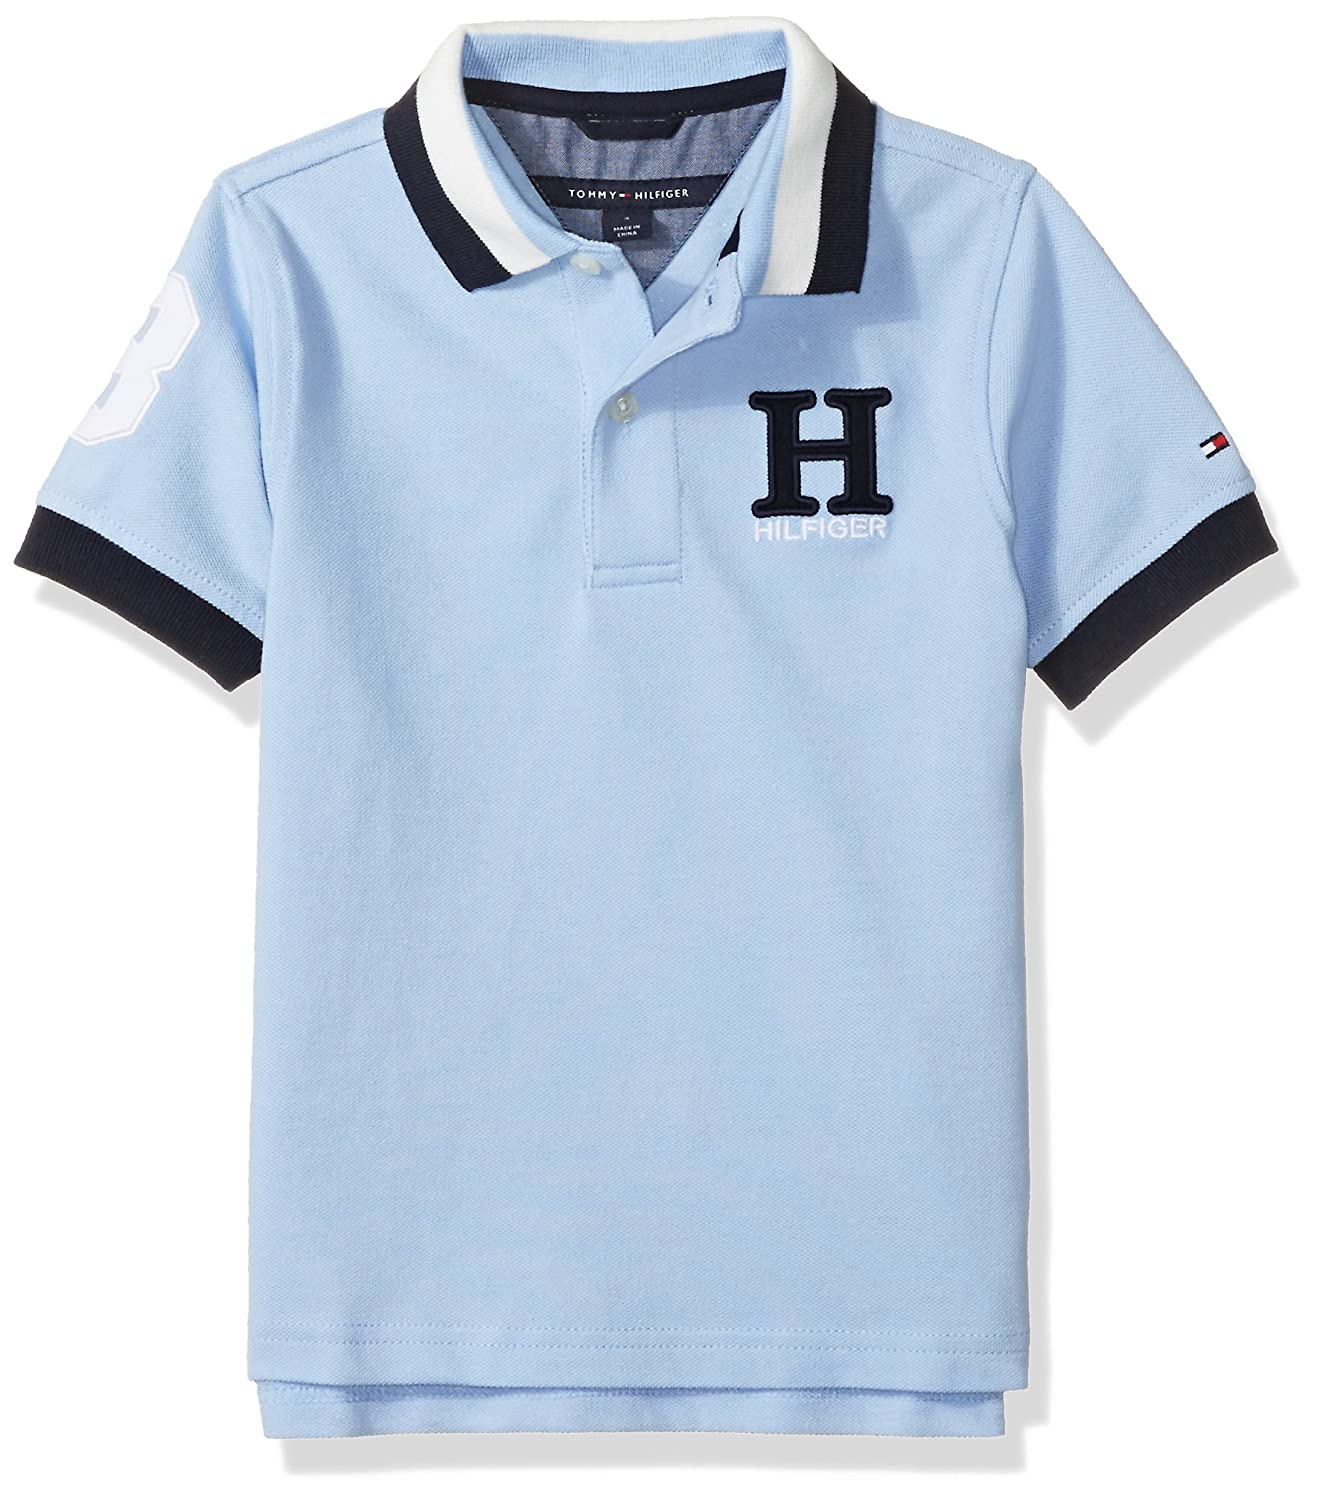 Tommy Hilfiger Boys' Short Sleeve Solid Matt Polo Shirt -